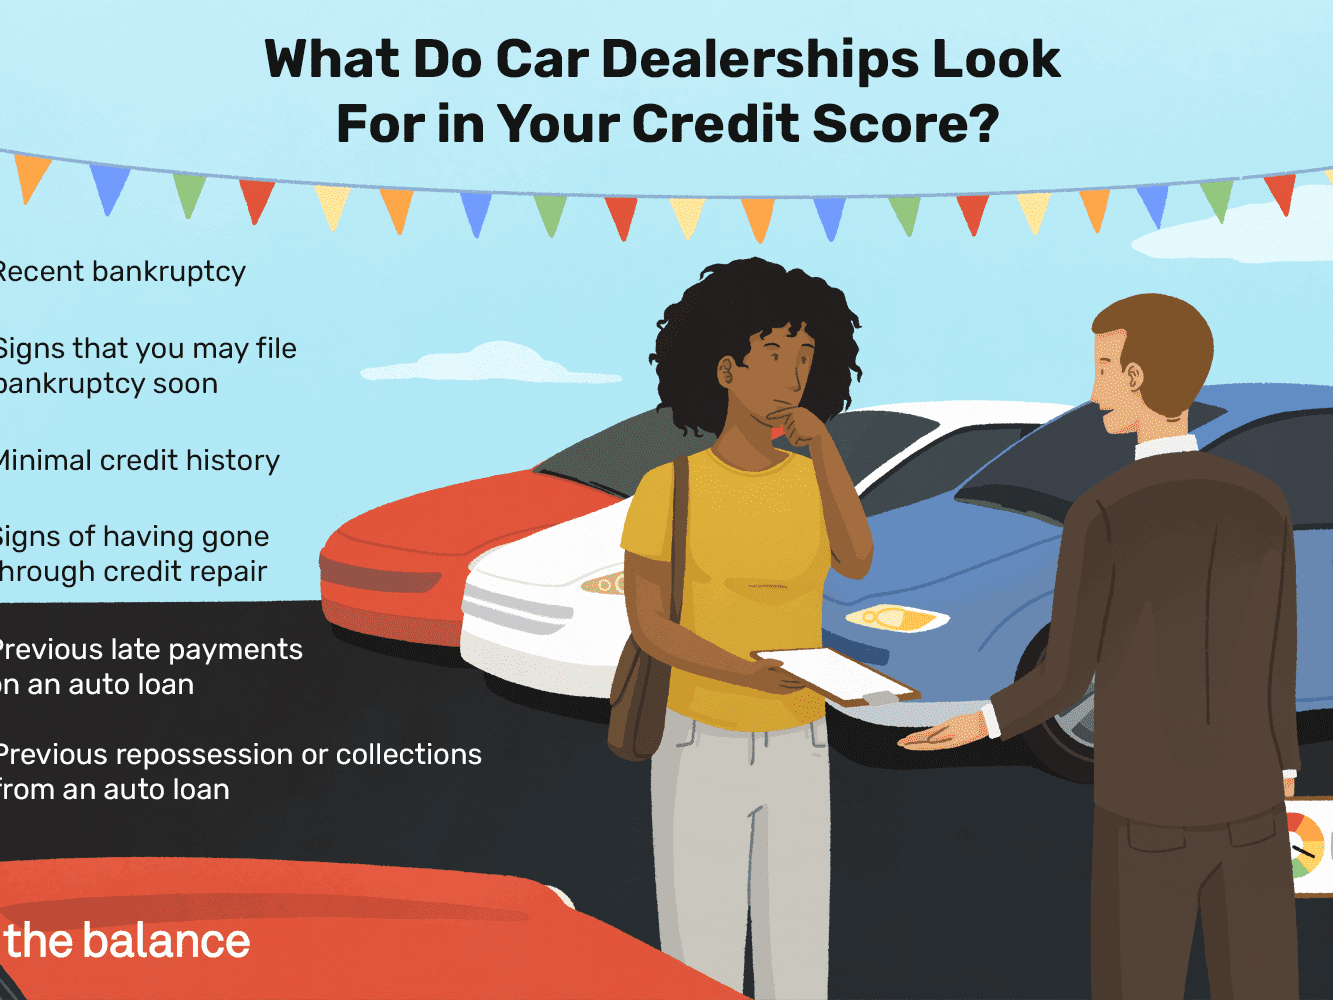 What Credit Score Do Car Dealers Use?